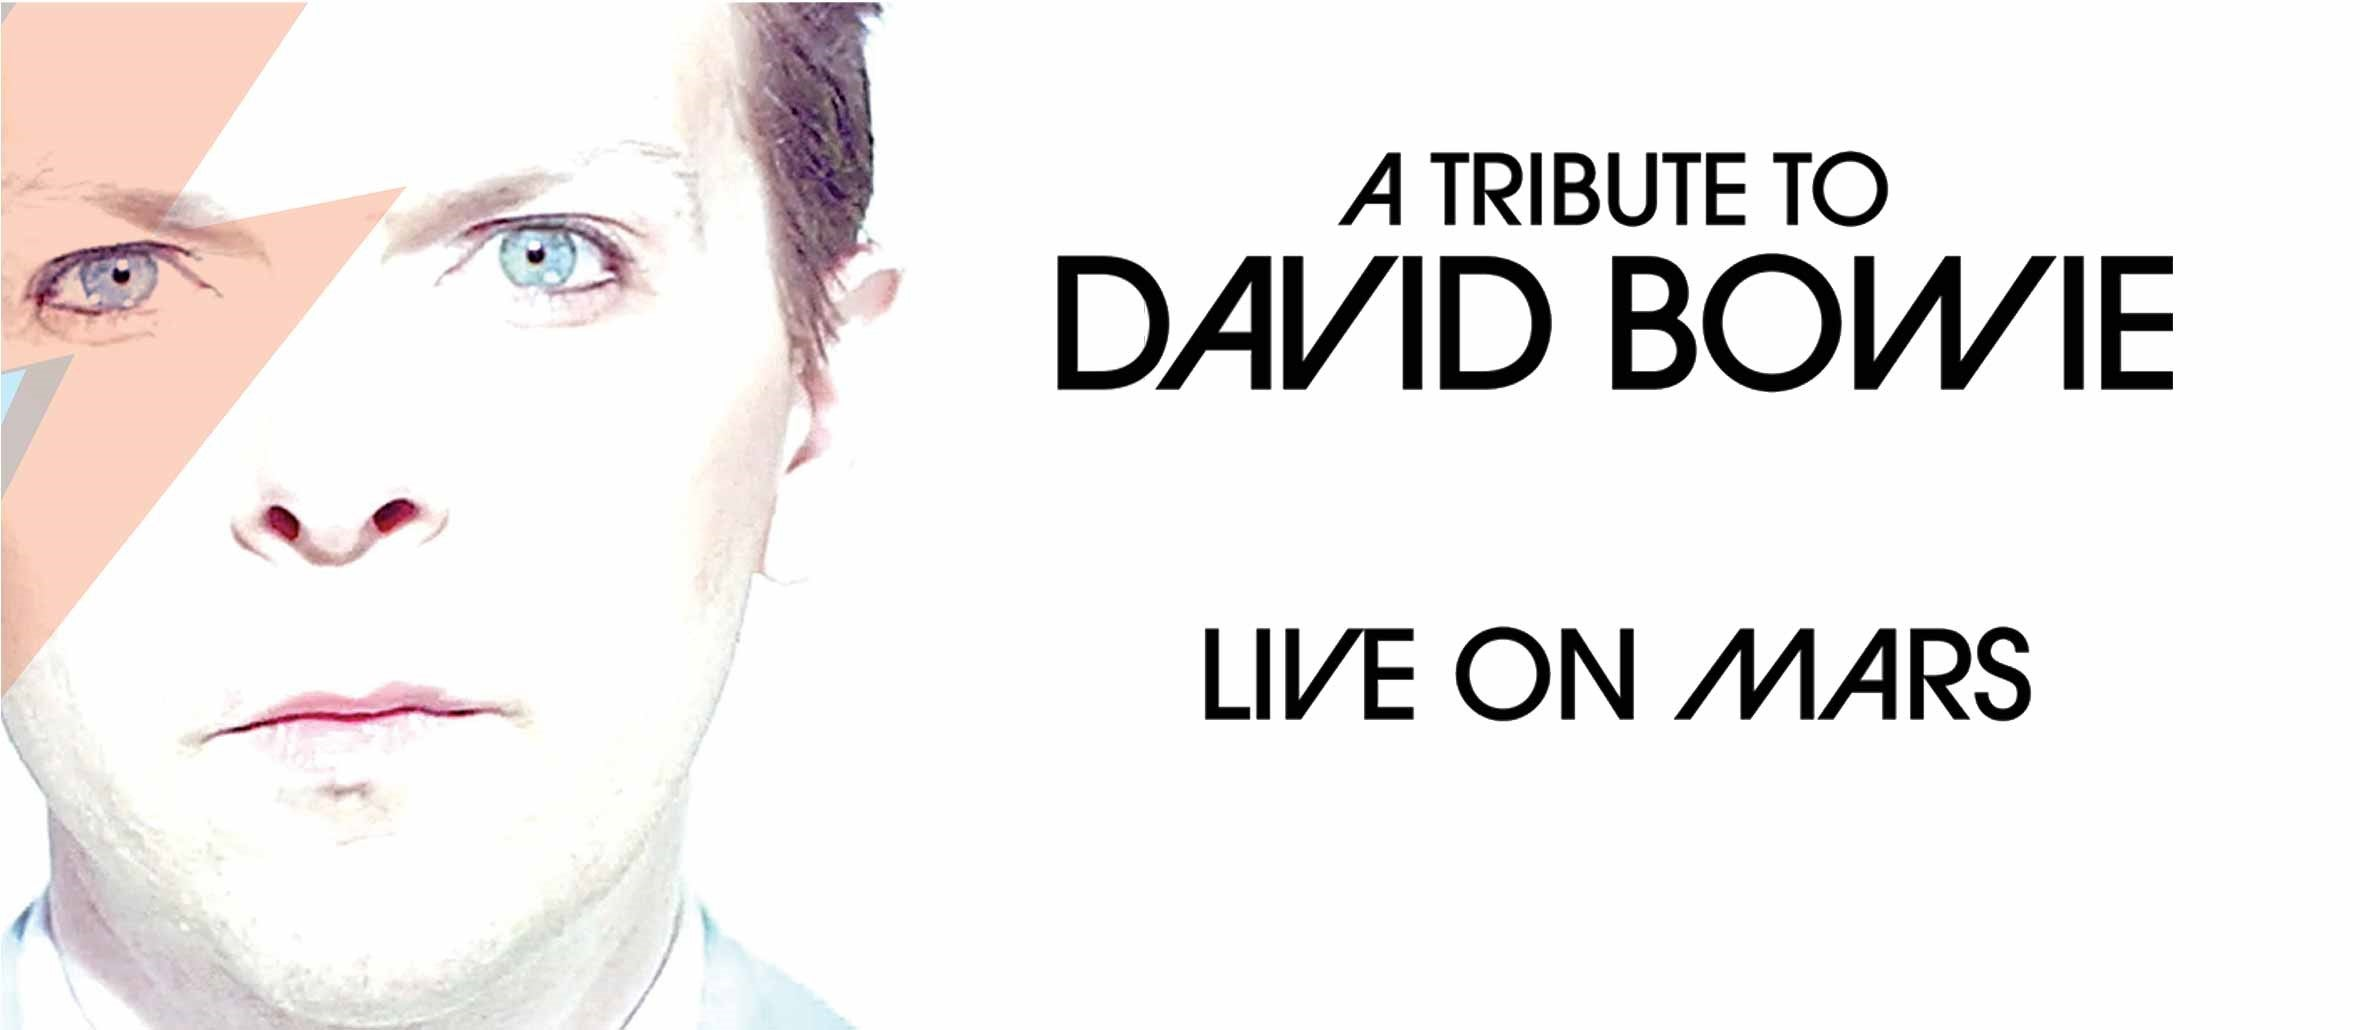 7f9f54963c0 A Tribute to David Bowie  LIVE ON MARS